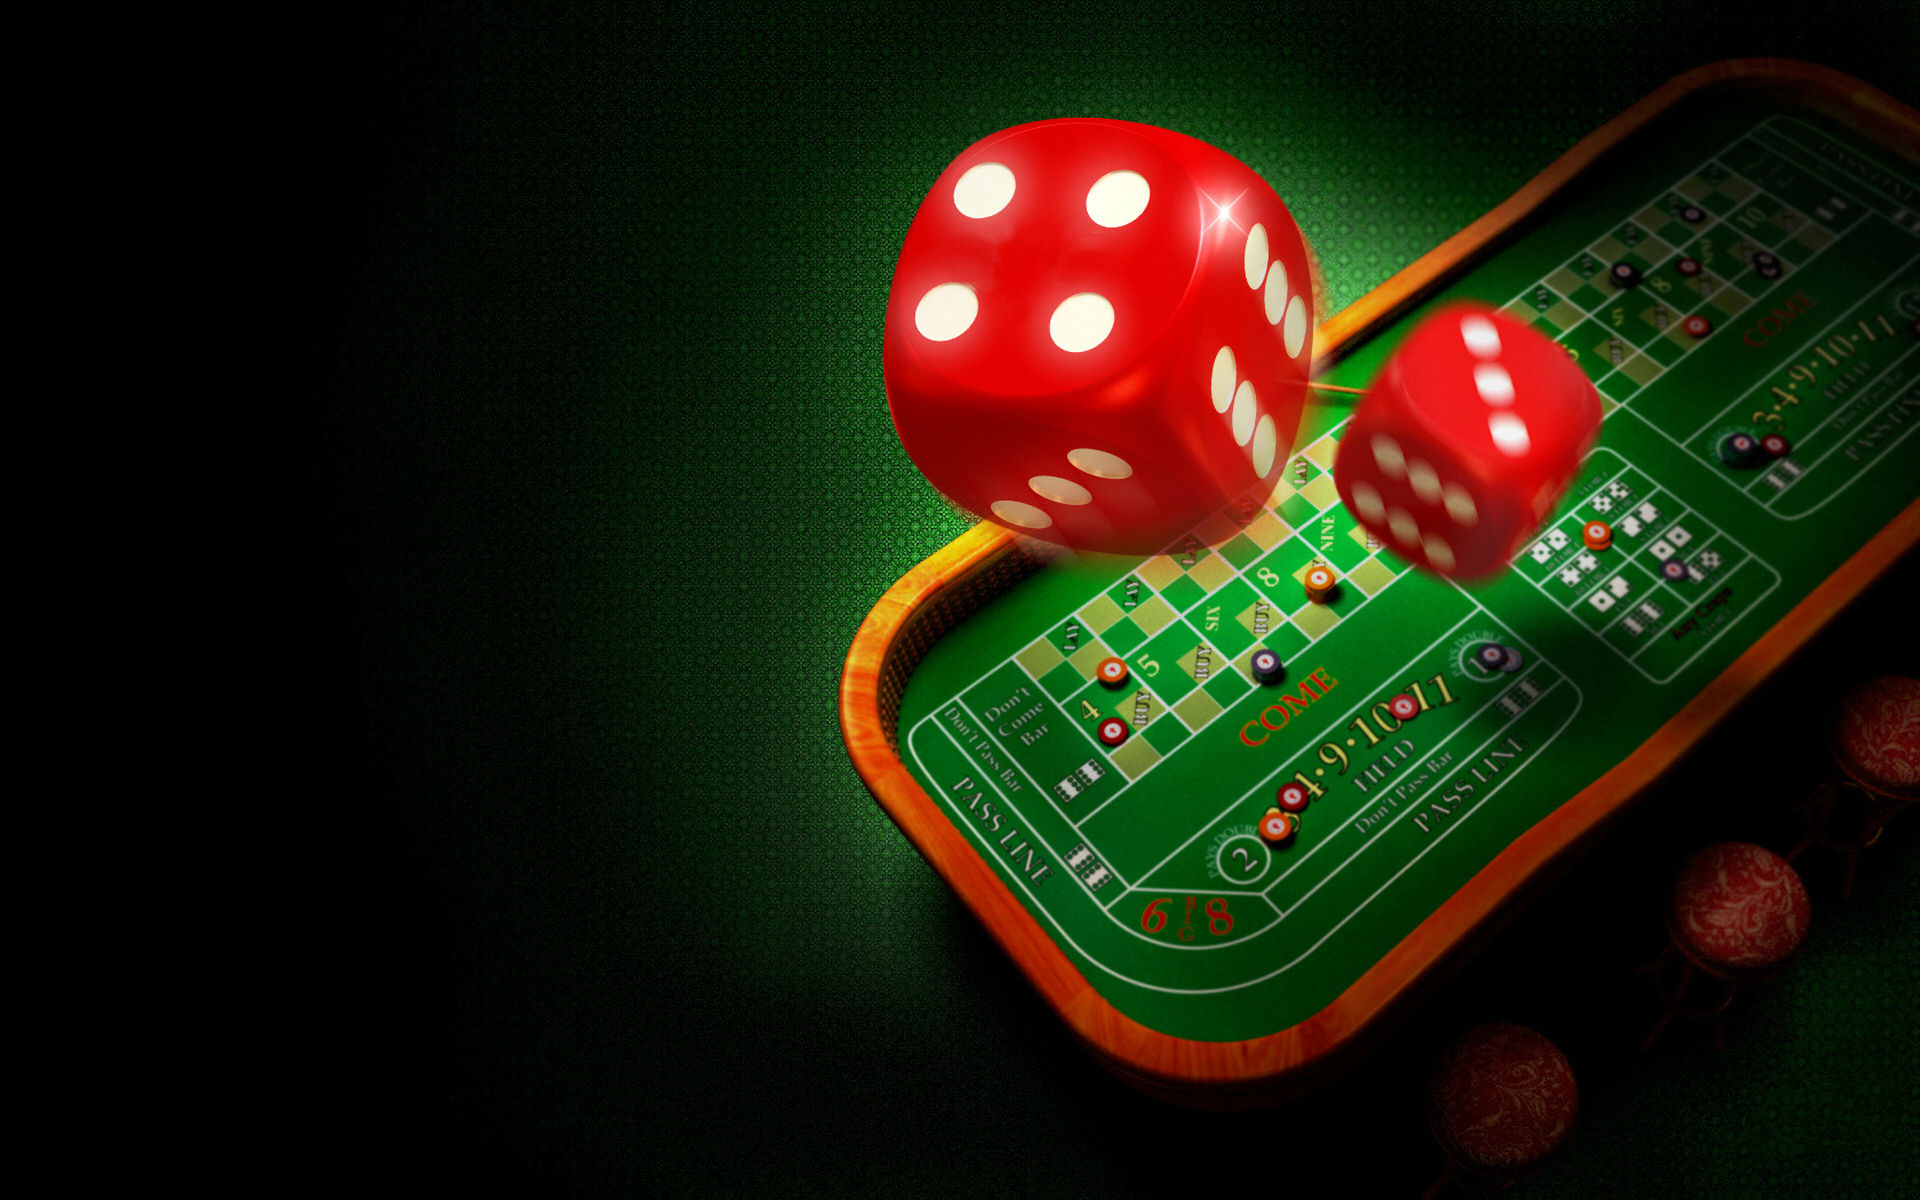 Roulette table picture download